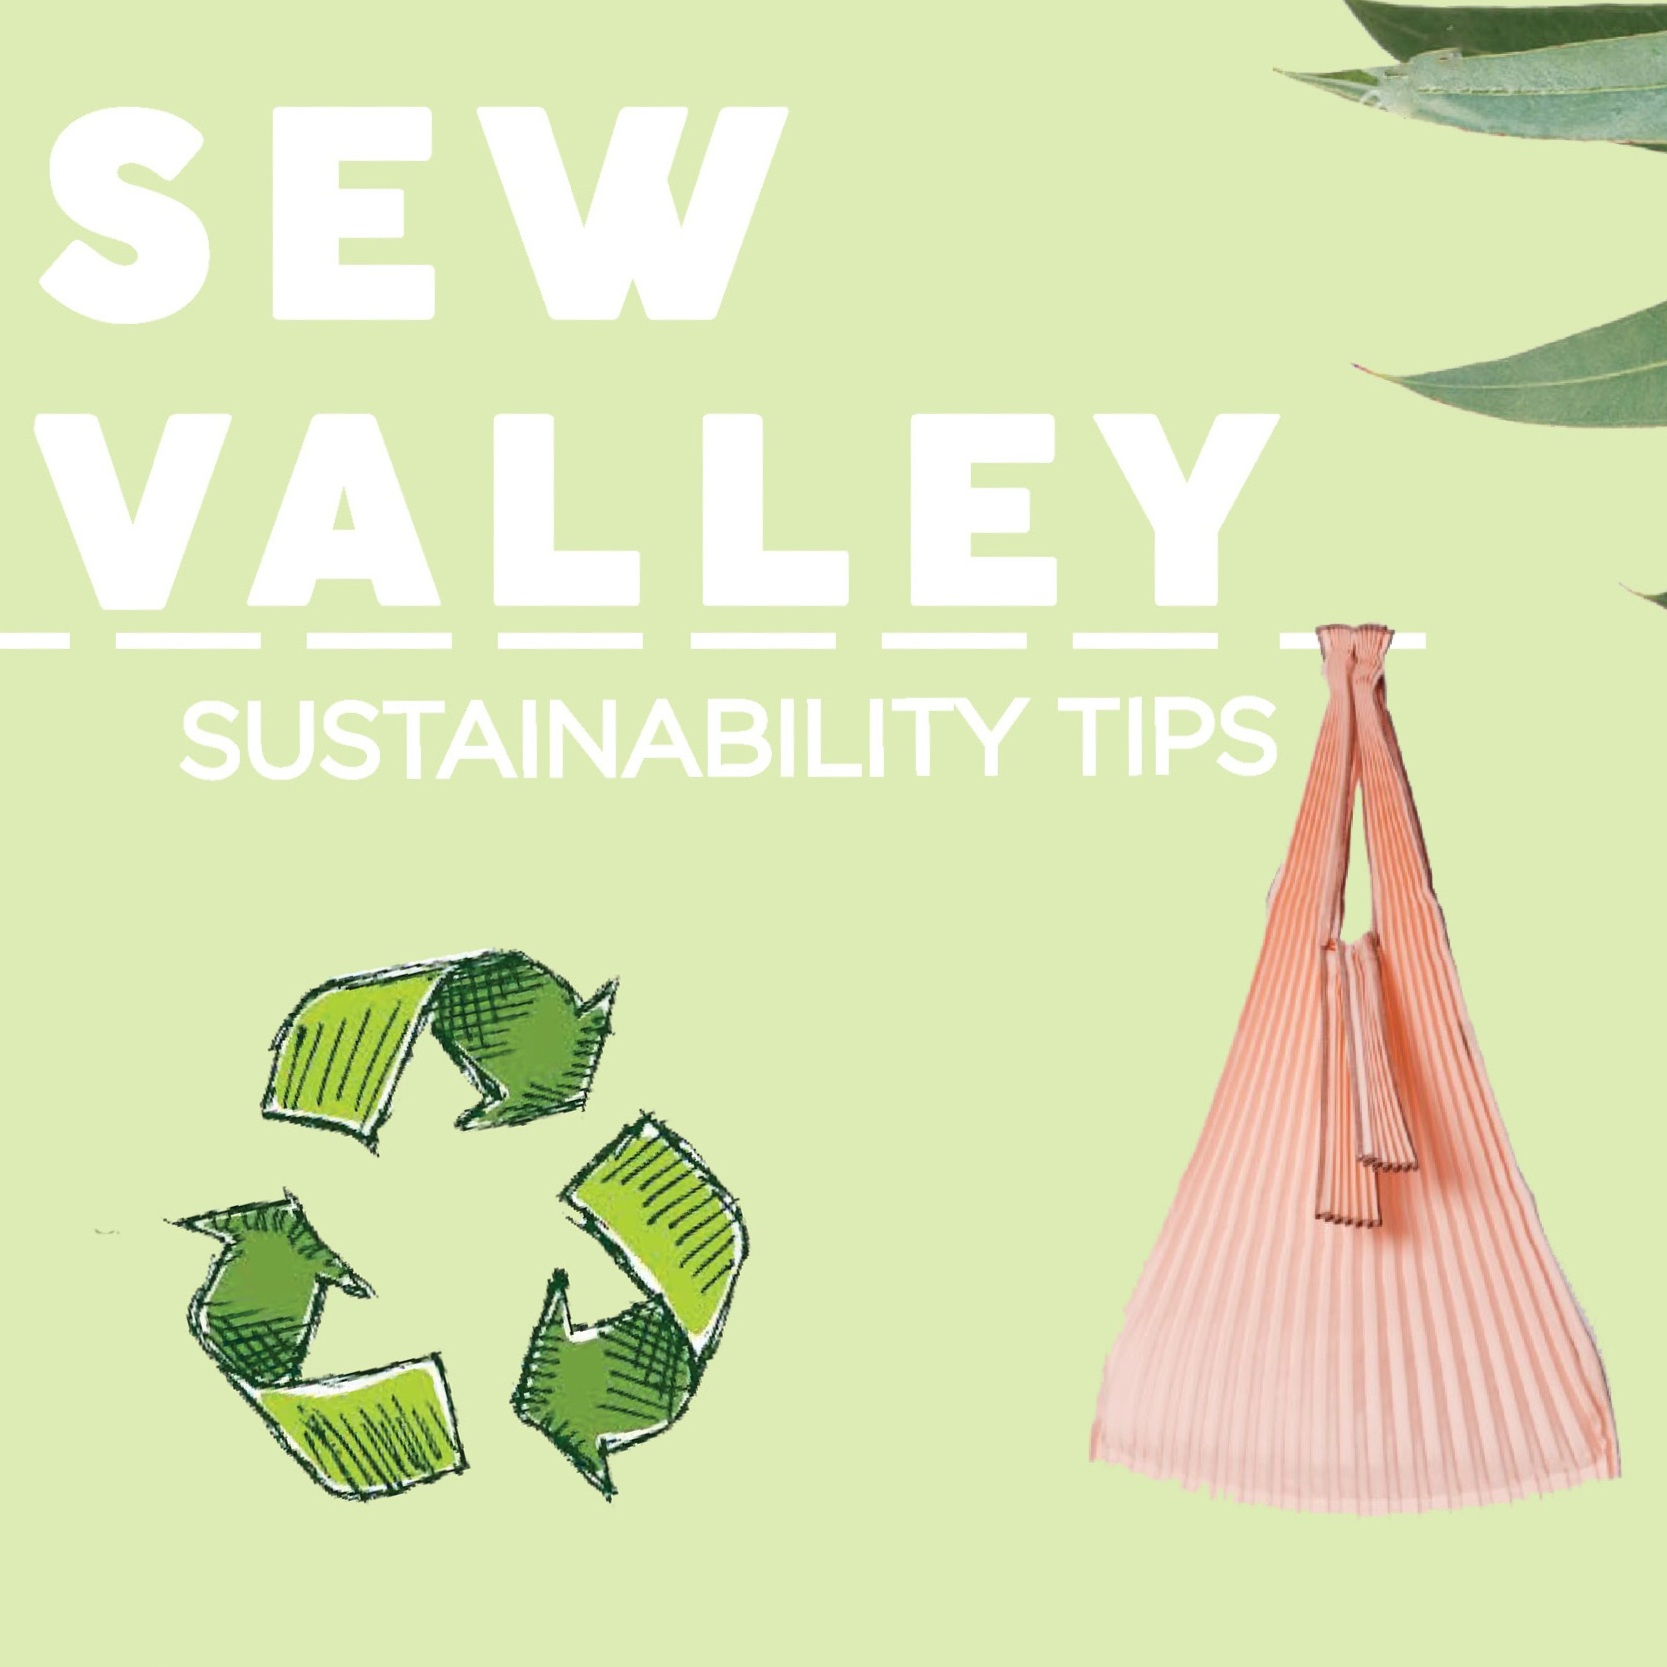 Click here to view + download our free sustainability guides